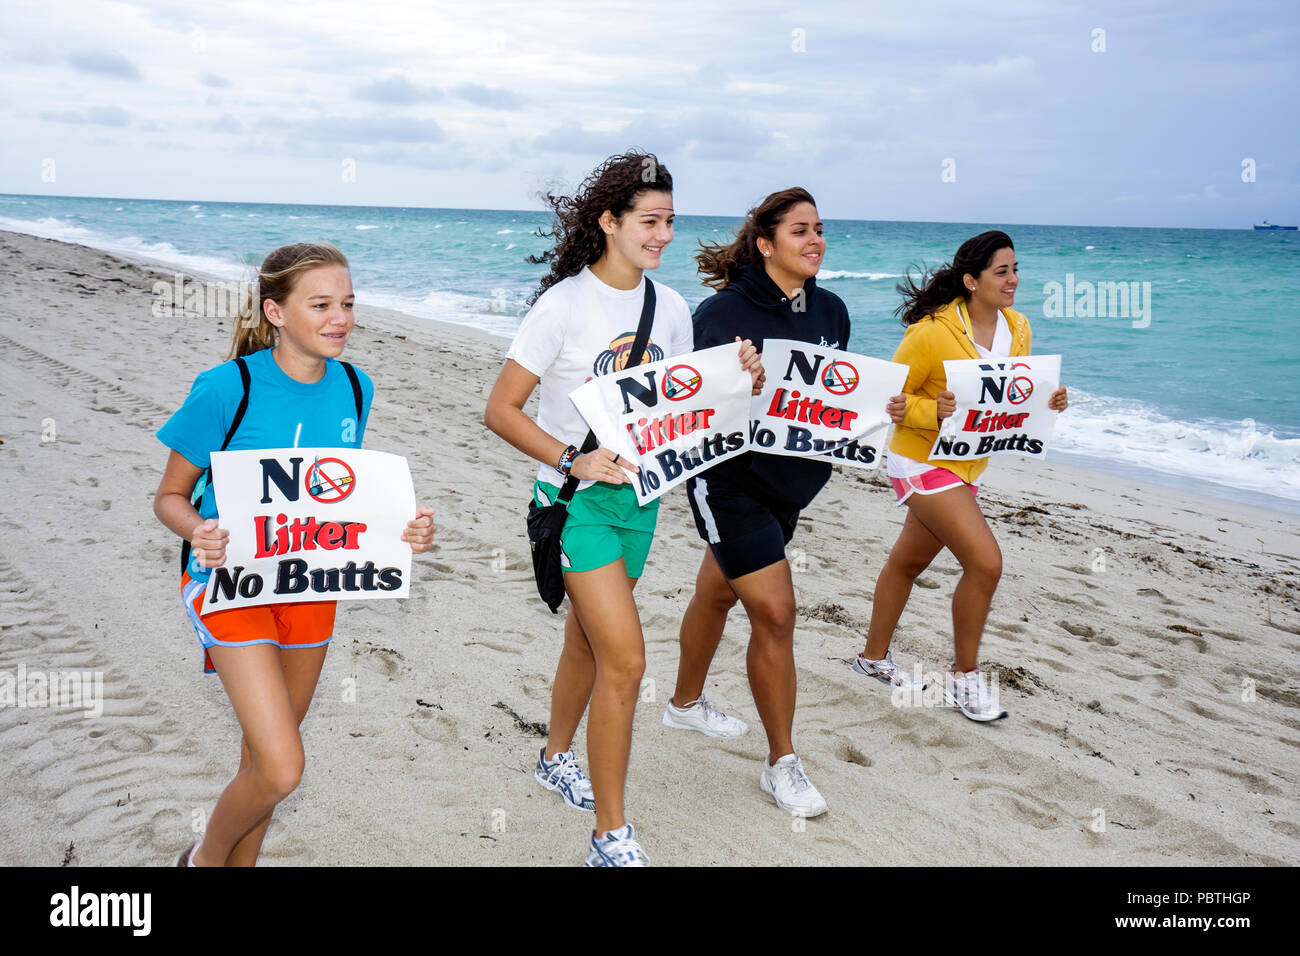 Miami Beach Florida Atlantic Ocean anti-litter anti litter demonstration community neighborhood initiative environment pollution - Stock Image